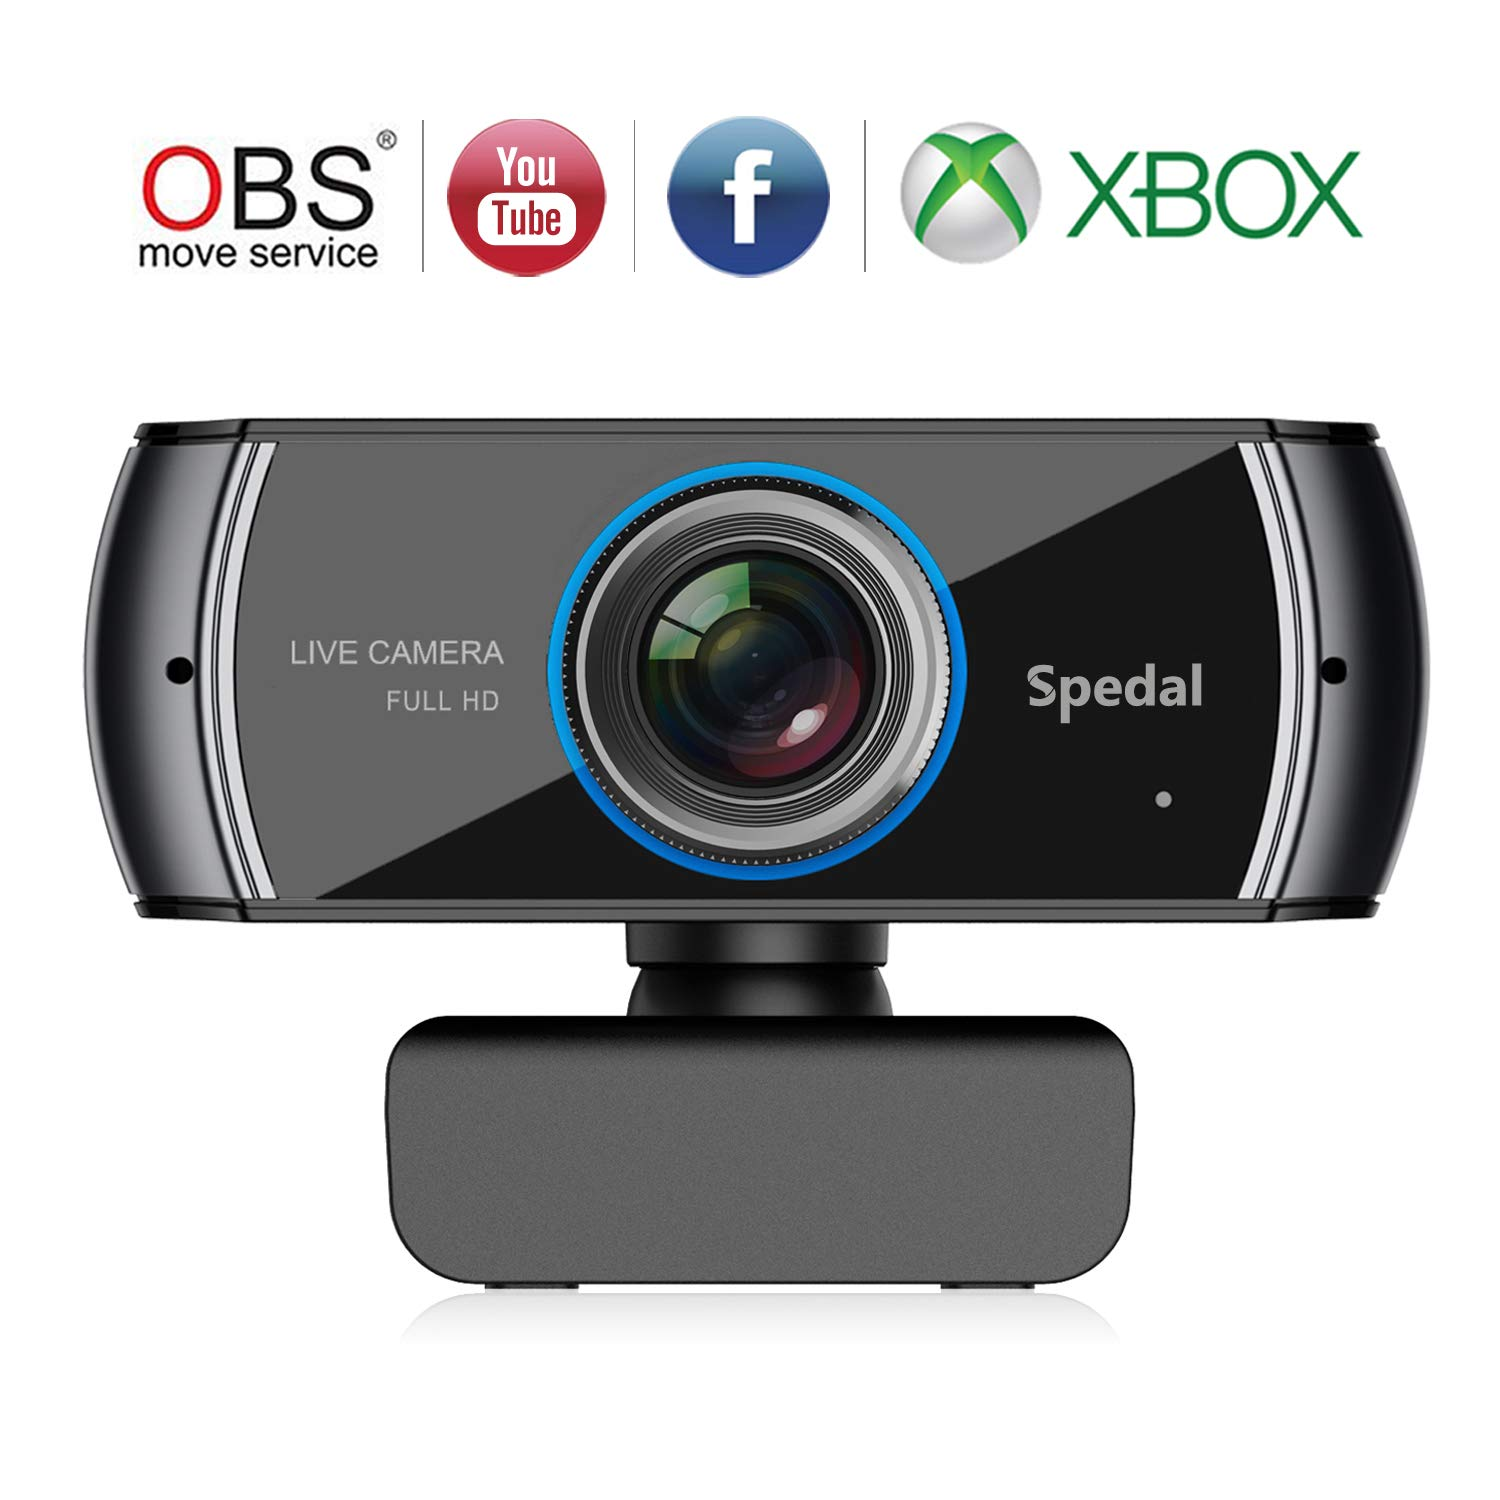 Spedal Full HD Webcam 1536p, Beauty Live Streaming Webcam, Computer Laptop Camera for OBS Xbox XSplit Skype Facebook, Compatible for Mac OS Windows 10/8/7 by Spedal